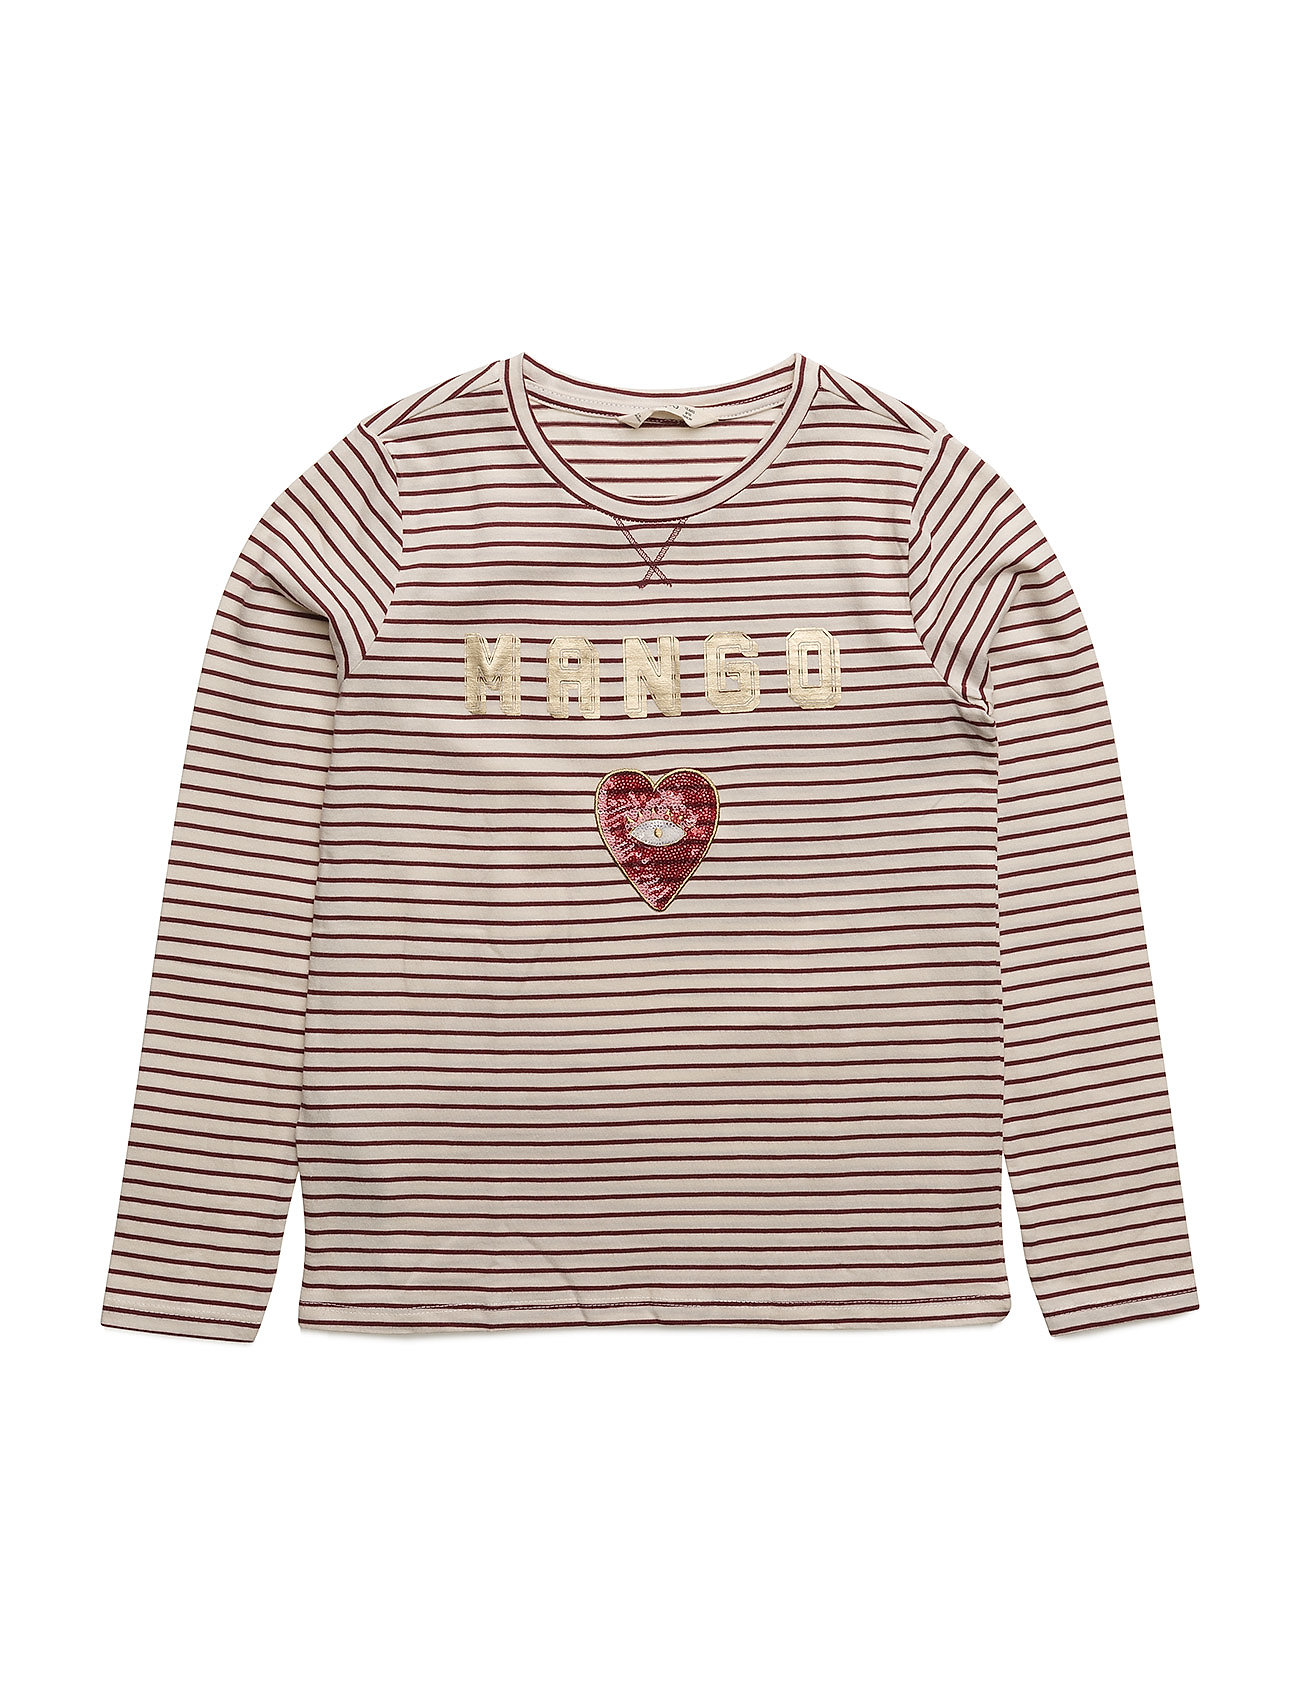 Mango Kids Embroidered sequin -shirt